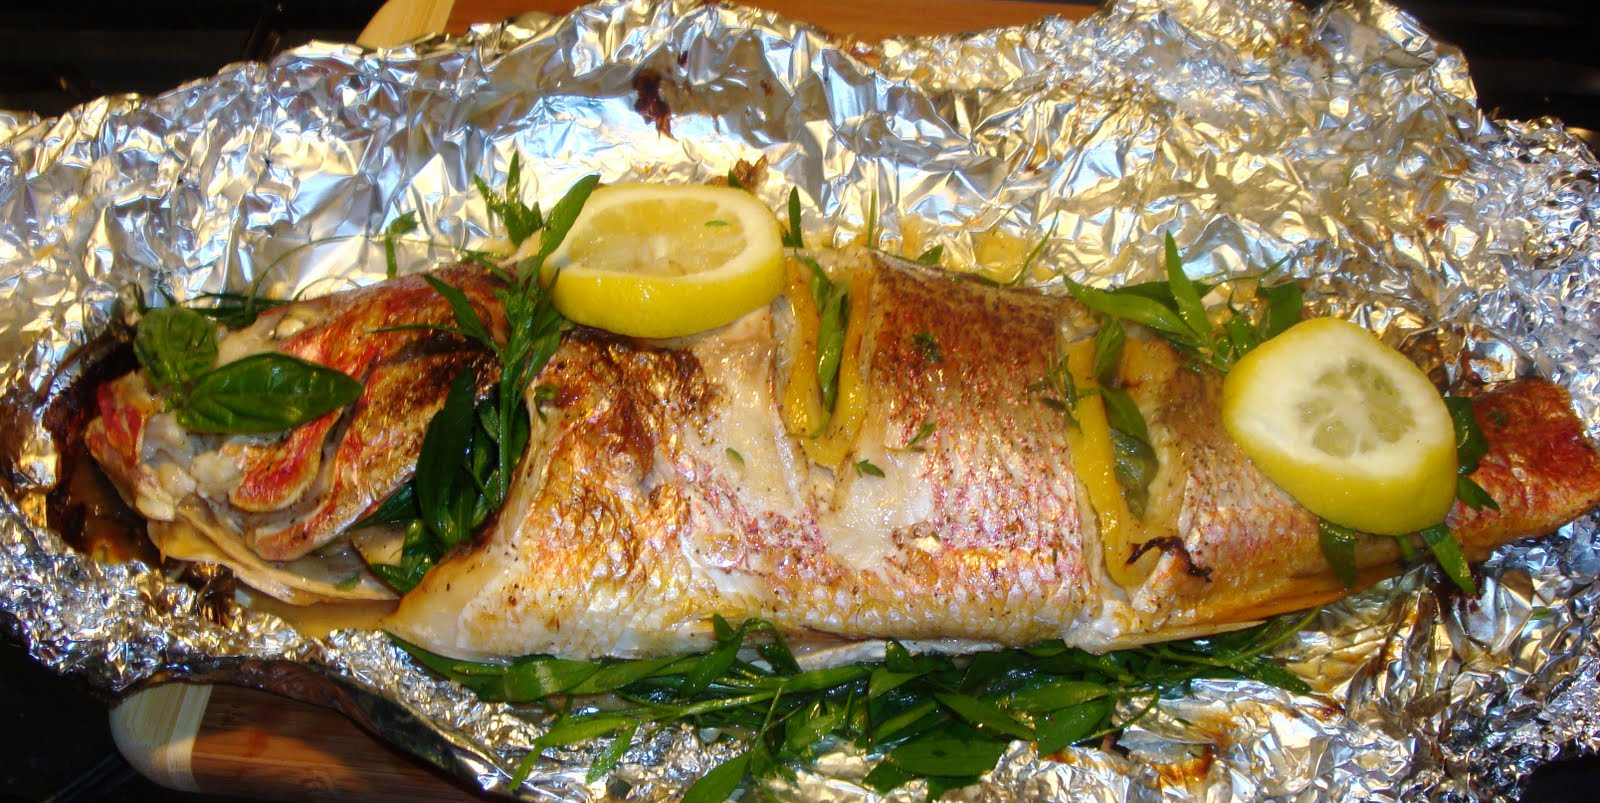 Barbecued Foiled Fish